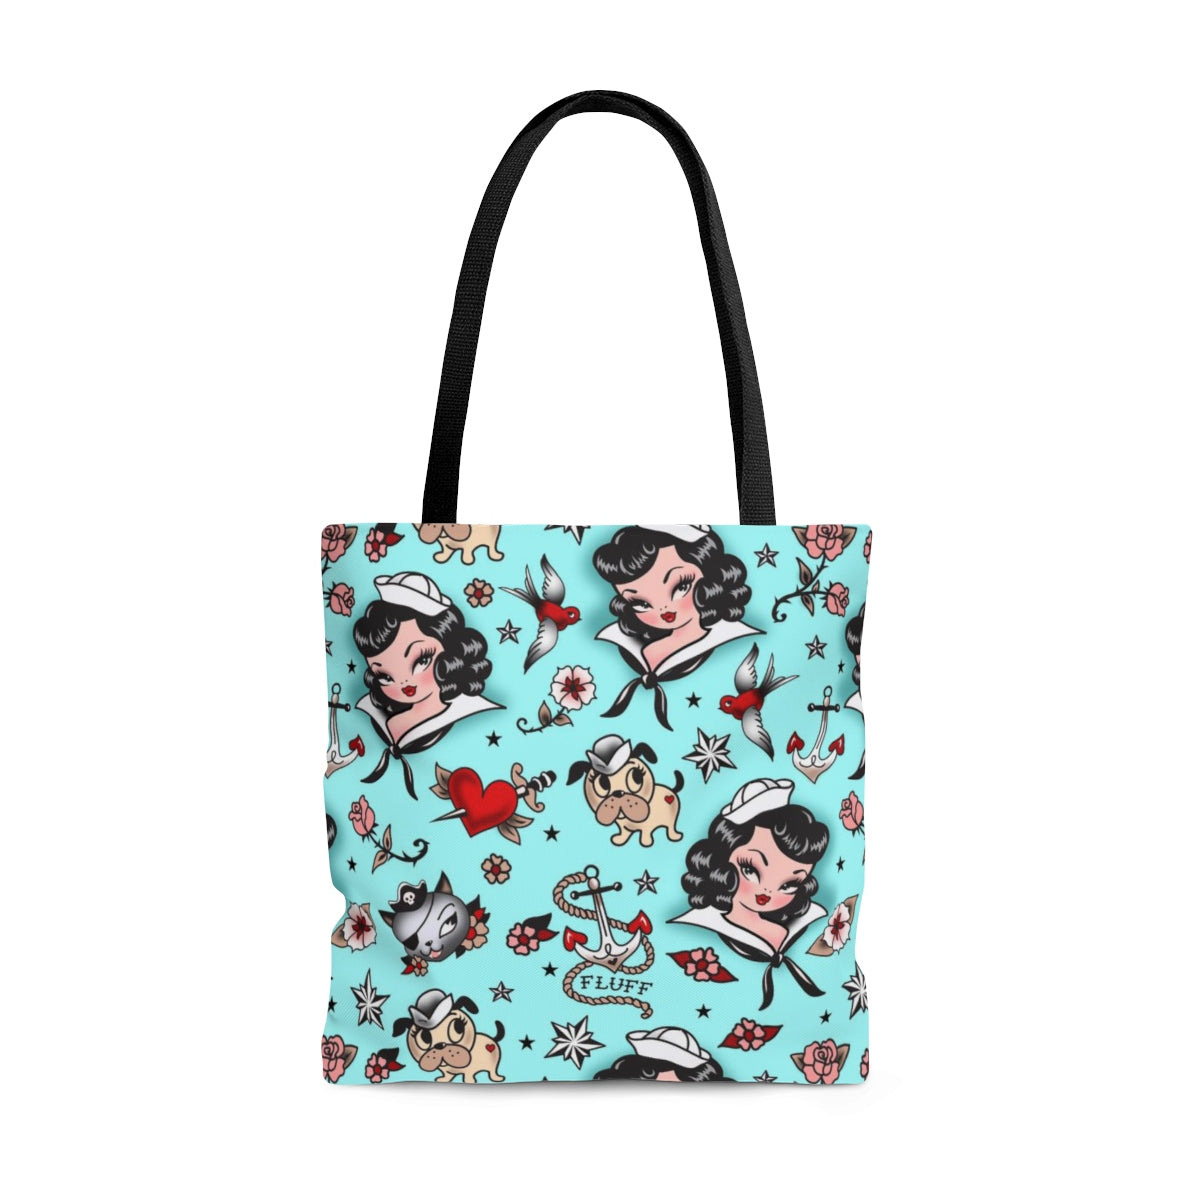 Suzy Sailor Girl on Light Blue • Tote Bag